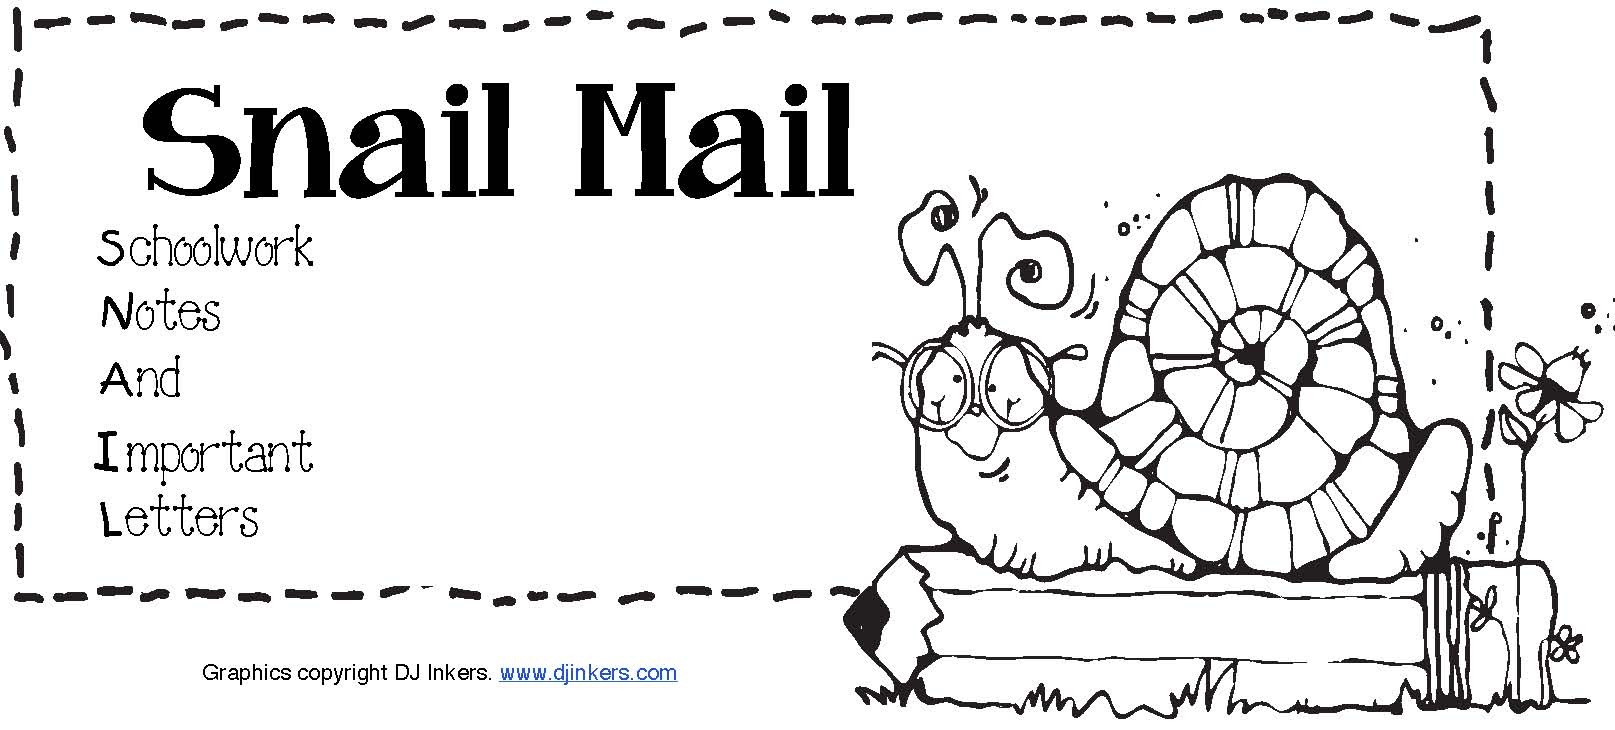 snail mail folder, back to school ideas, tips for getting organized, parent communication, take home folders, classroom management tips, ideas for corresponding with parents,